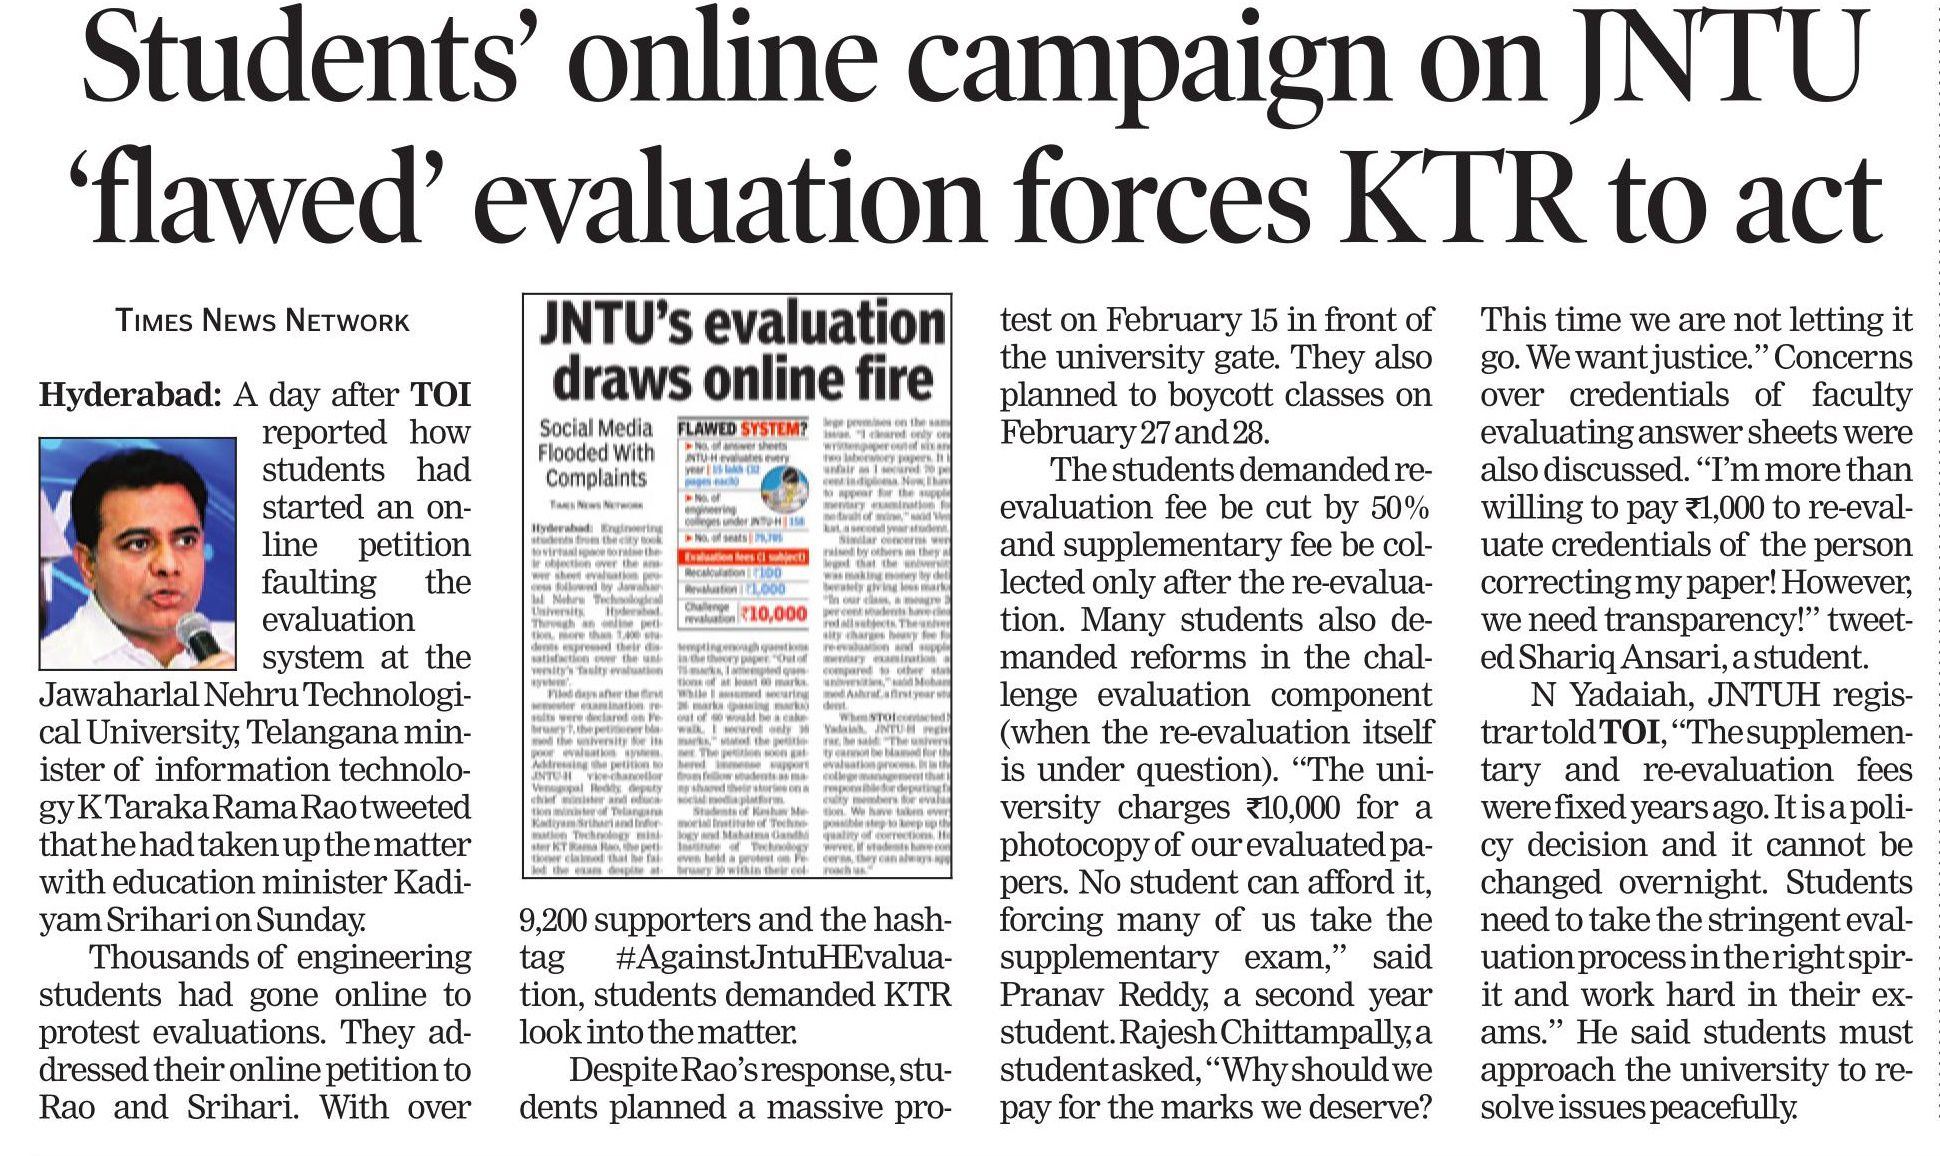 Students' online campaign on JNTU 'flawed' evaluation forces KTR to act